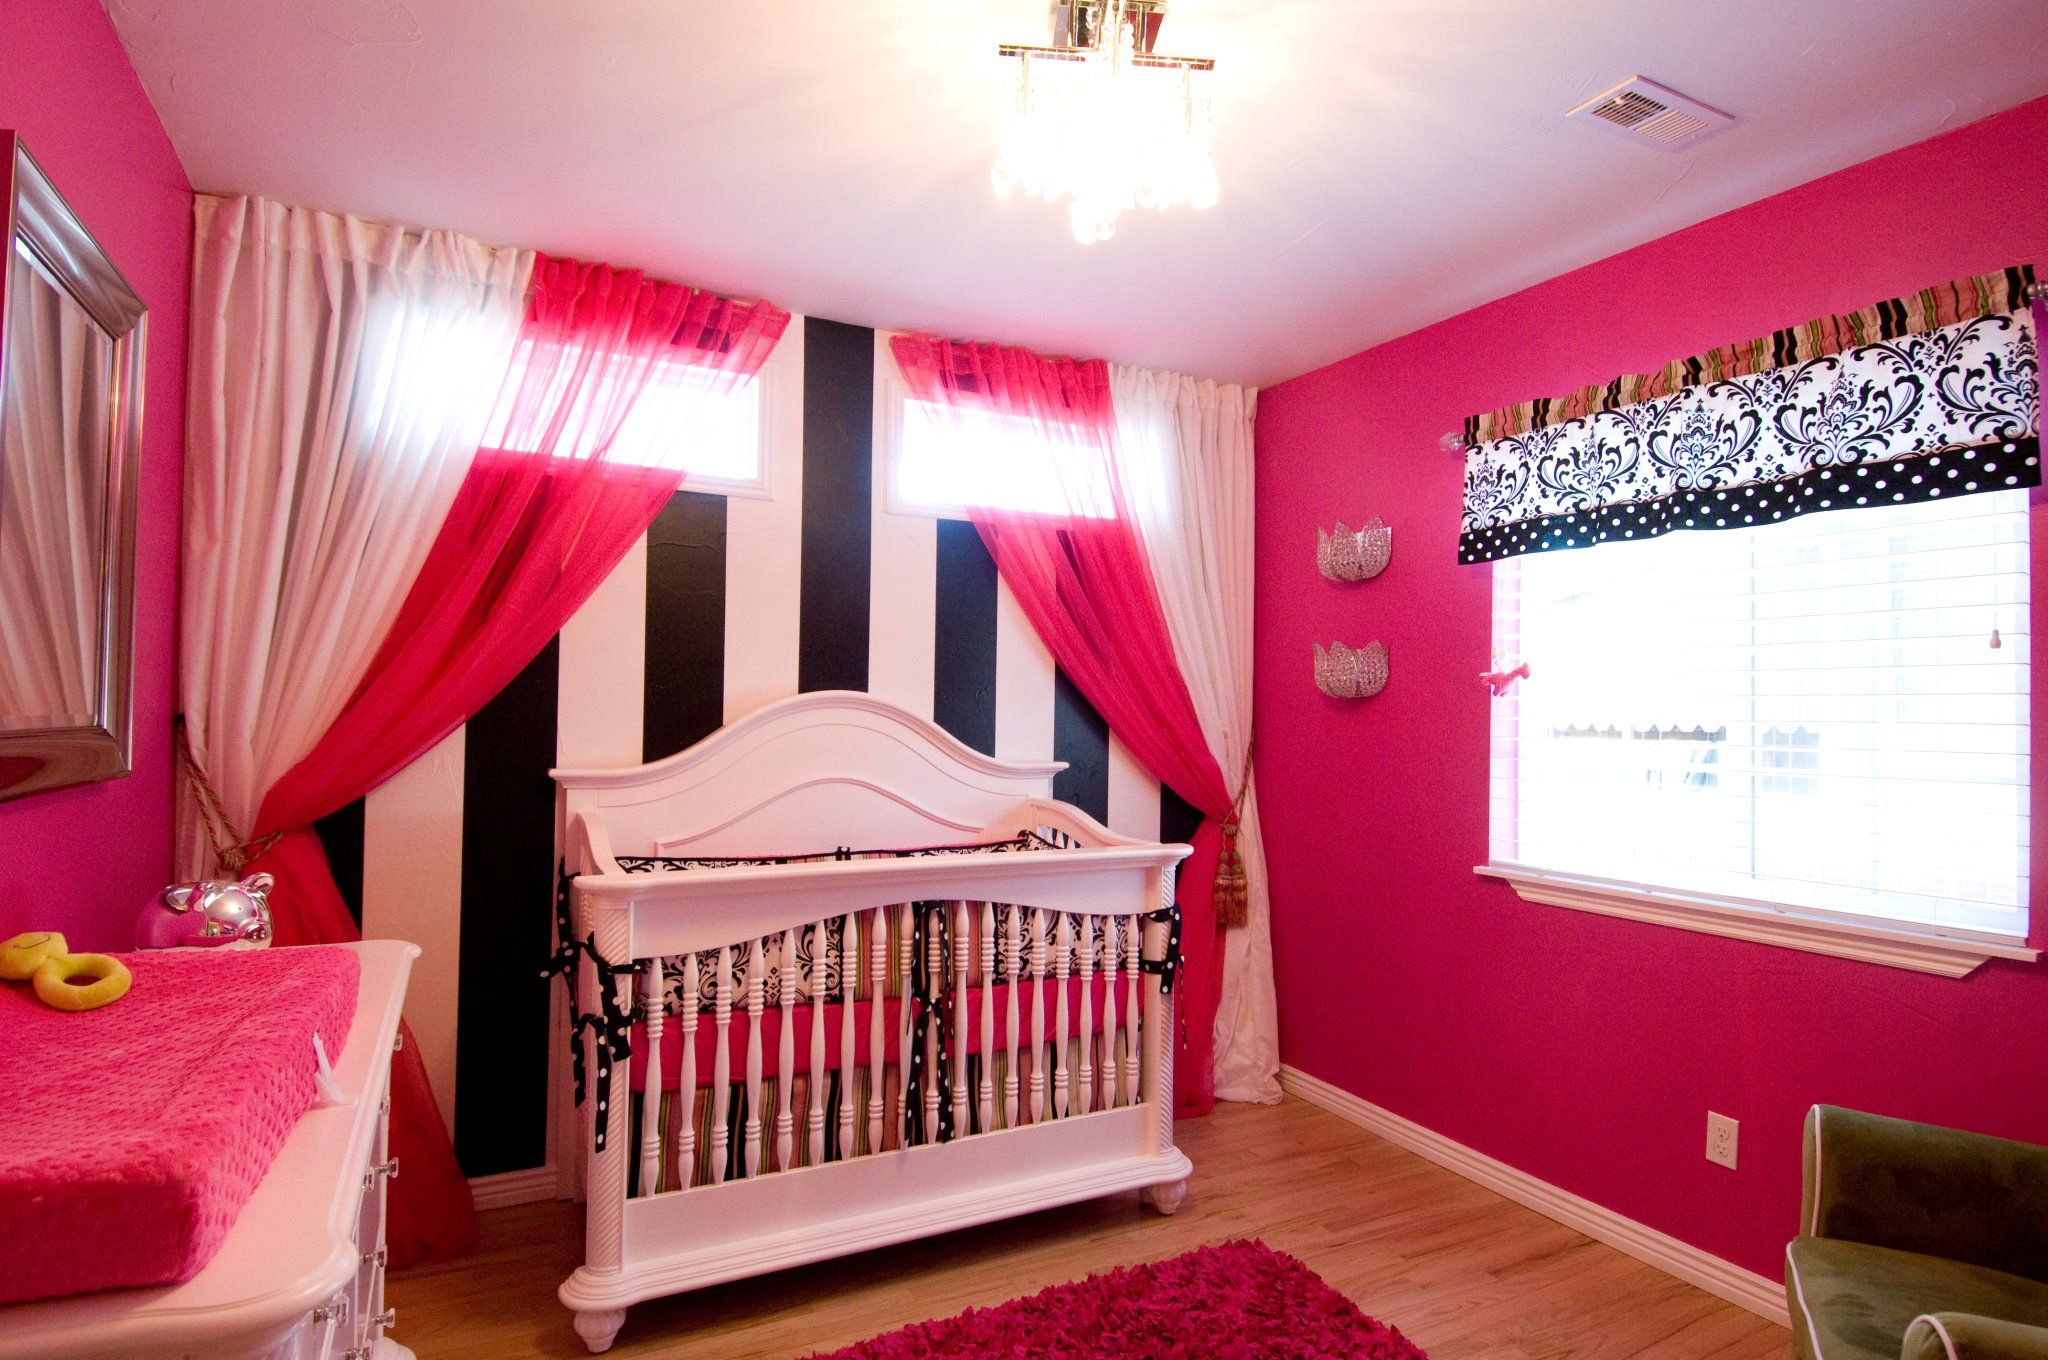 s nursery with images room nursery home decor on Elle Decor Nursery id=41131